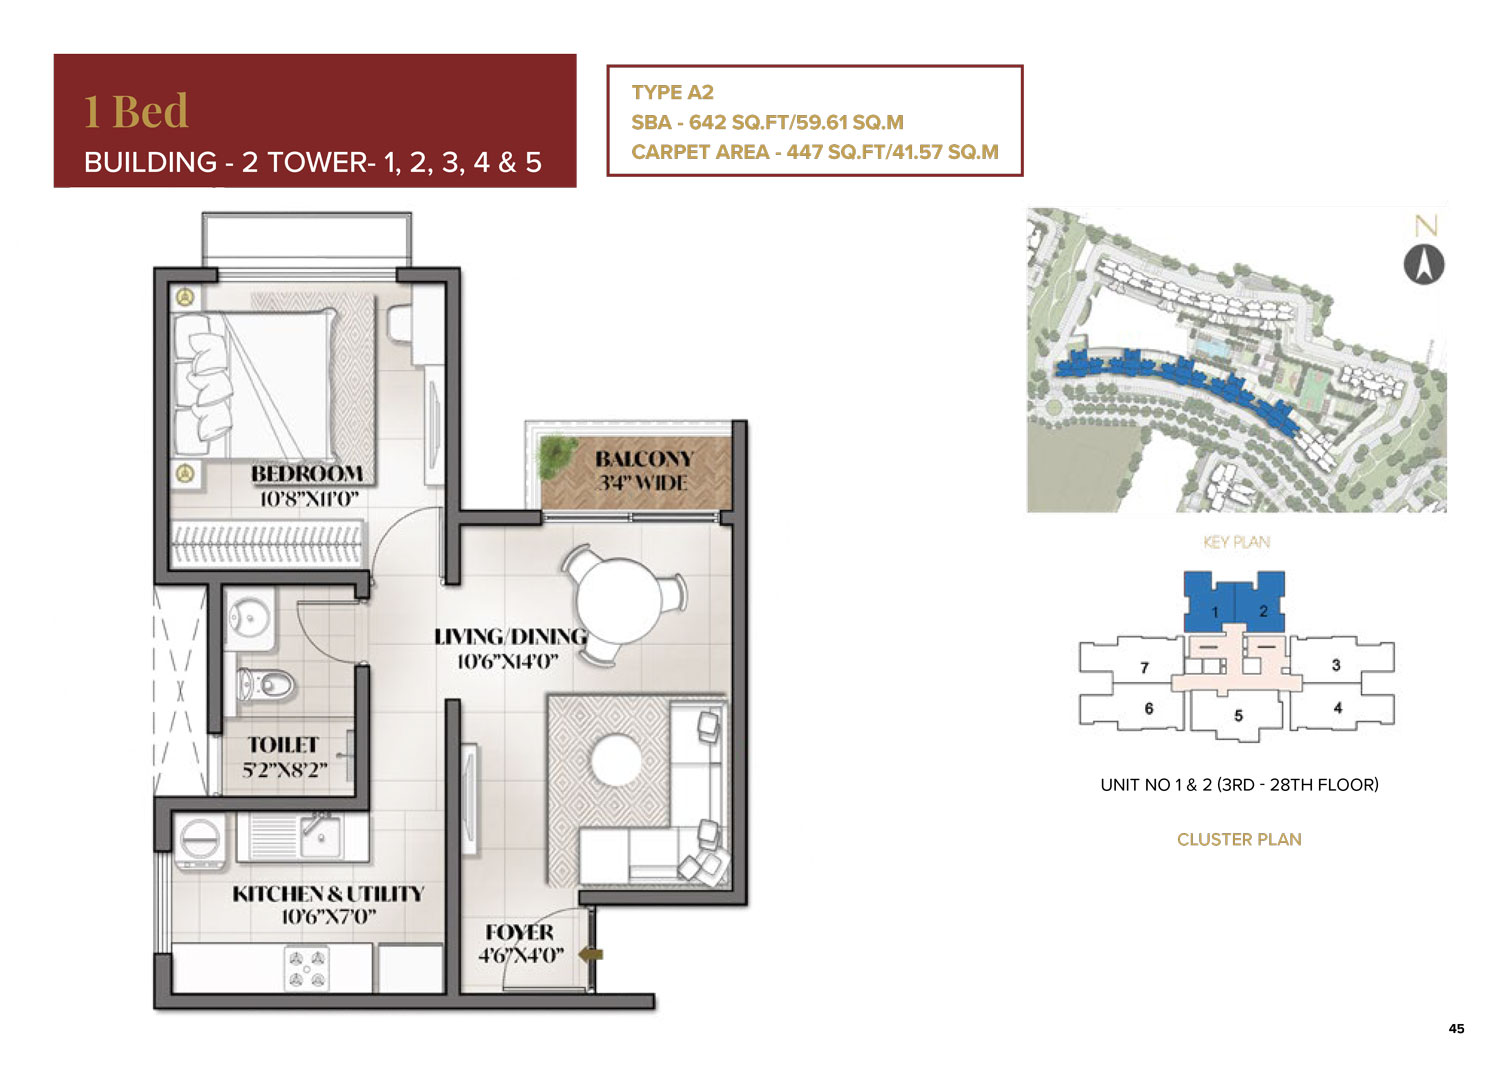 Type A2 - 642 Sq Ft